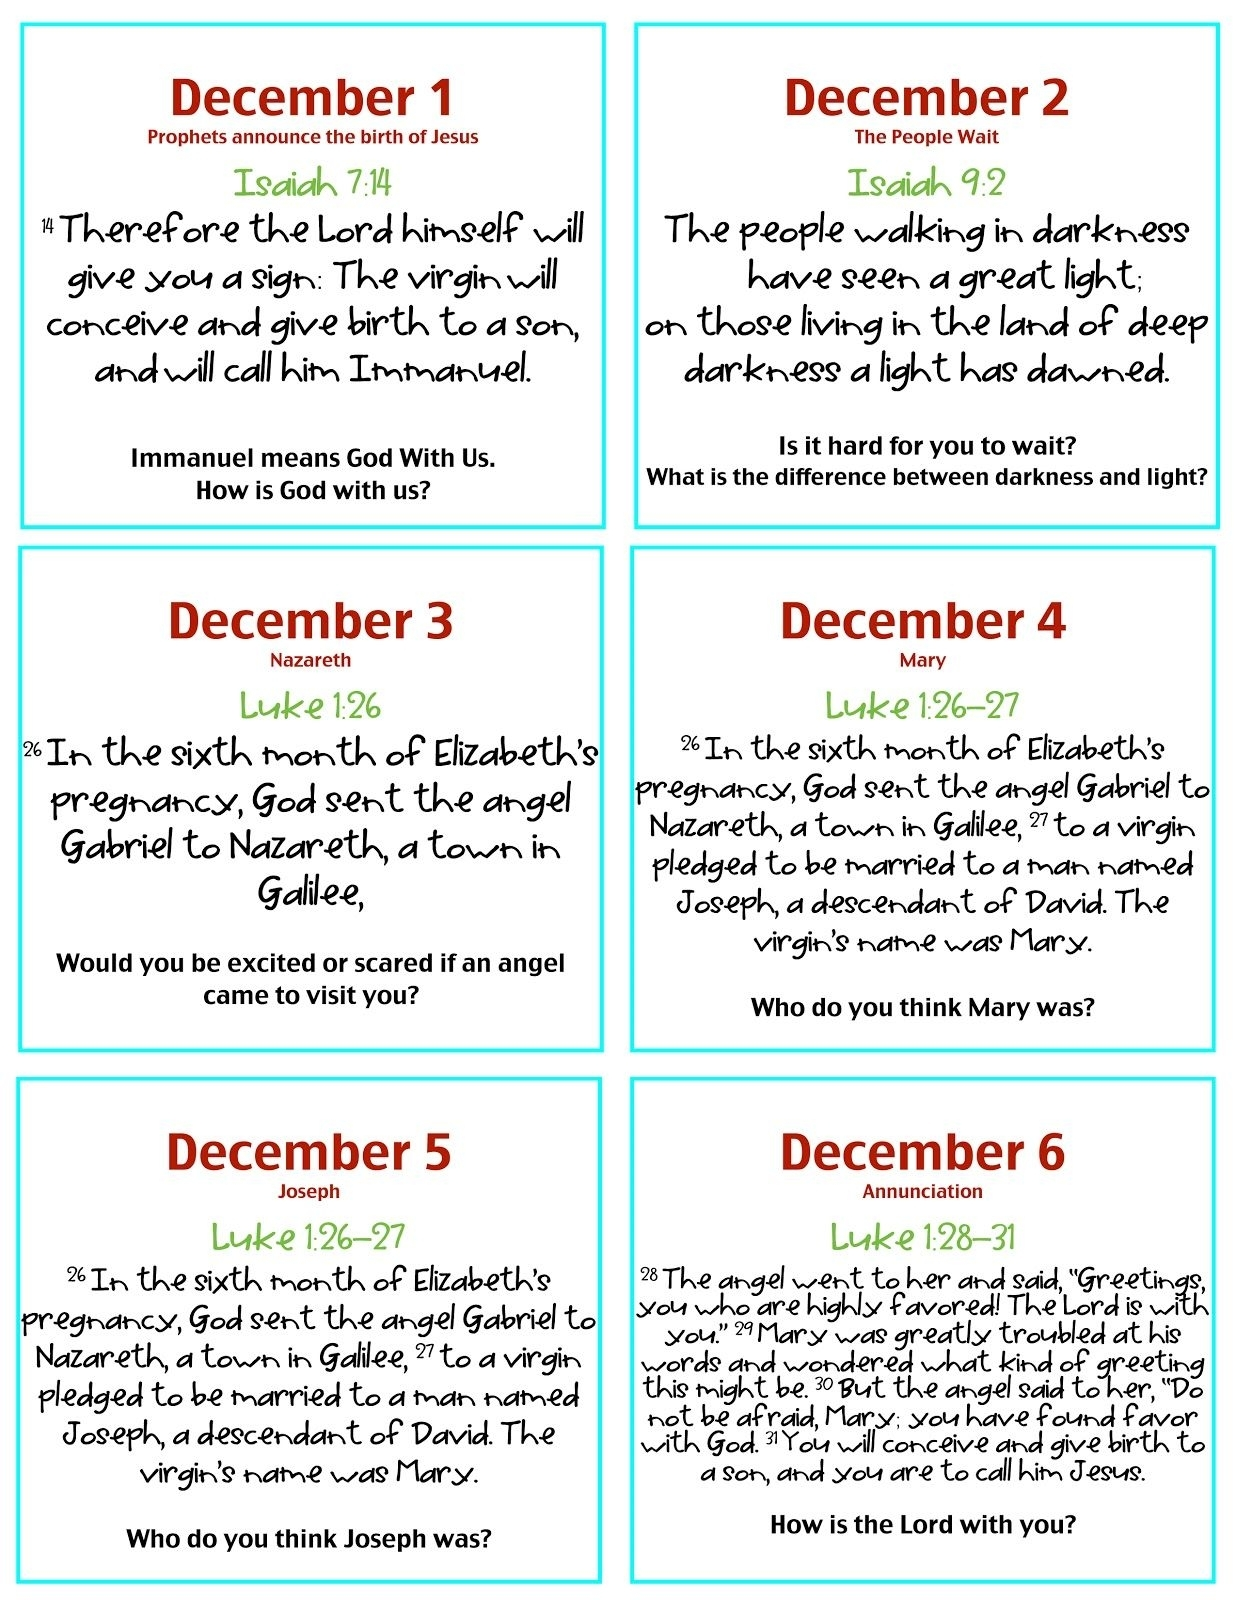 Verses & Discussion Questions For Advent Calendar